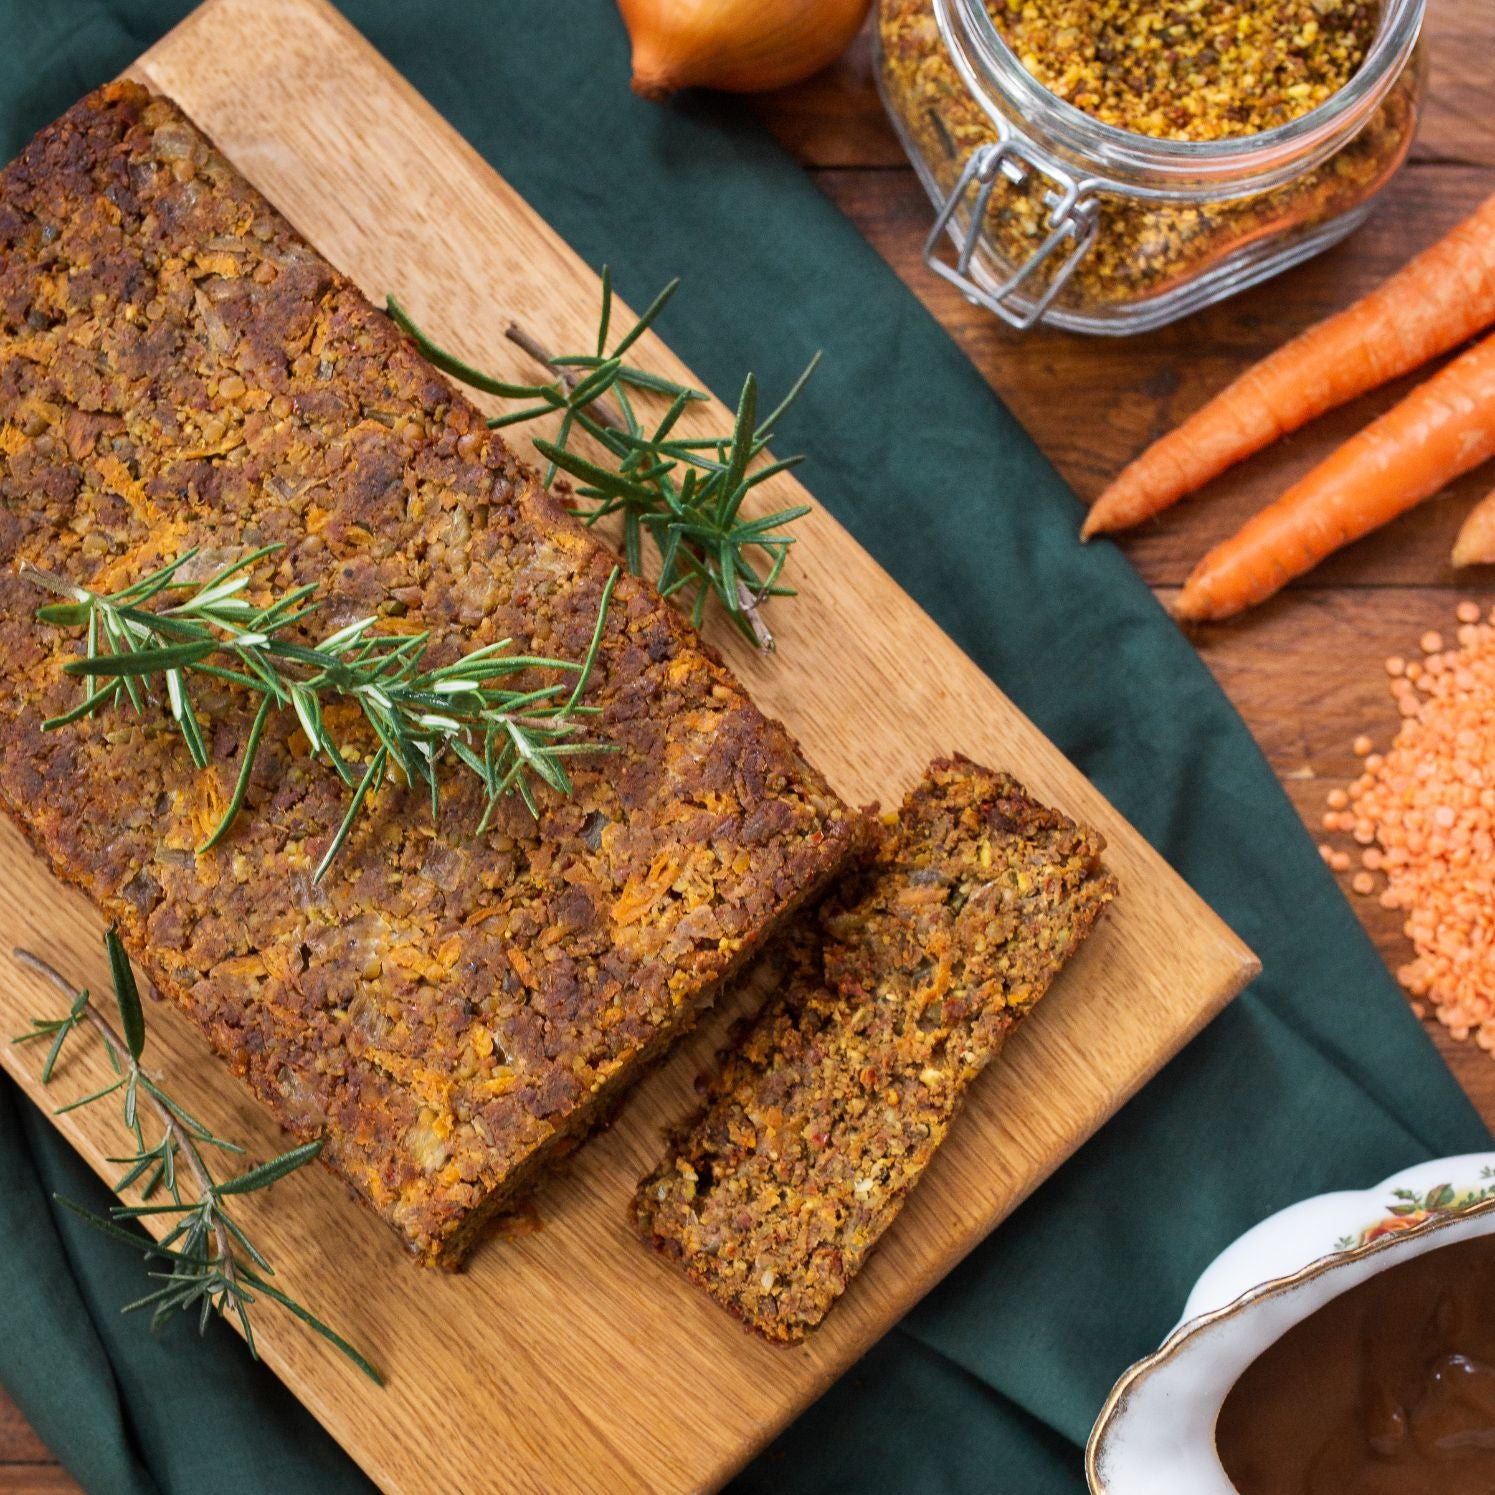 Nut Roast Kit for 6-7 People